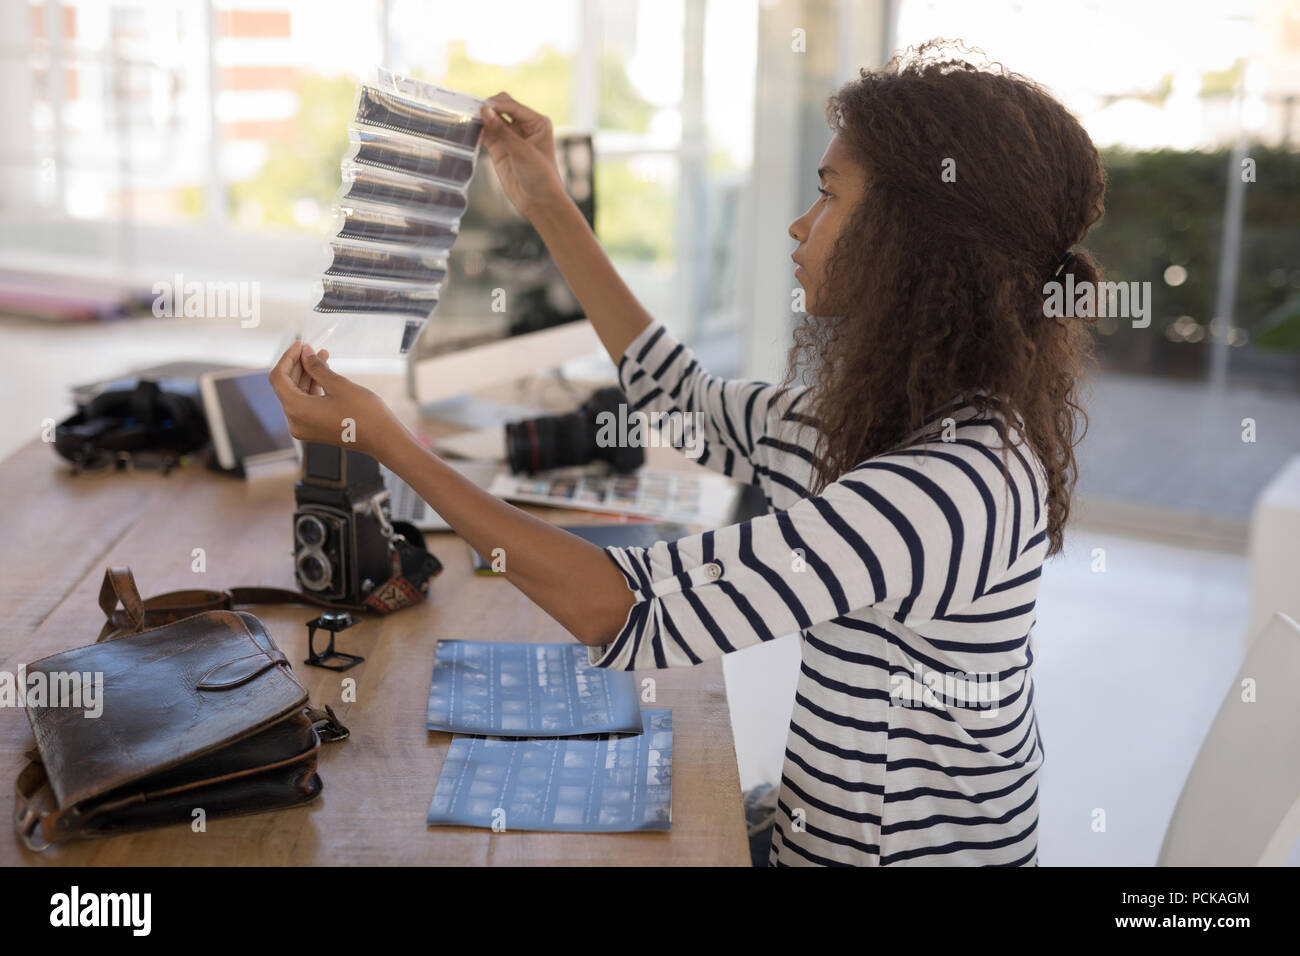 Photographer checking photo negatives at desk - Stock Image